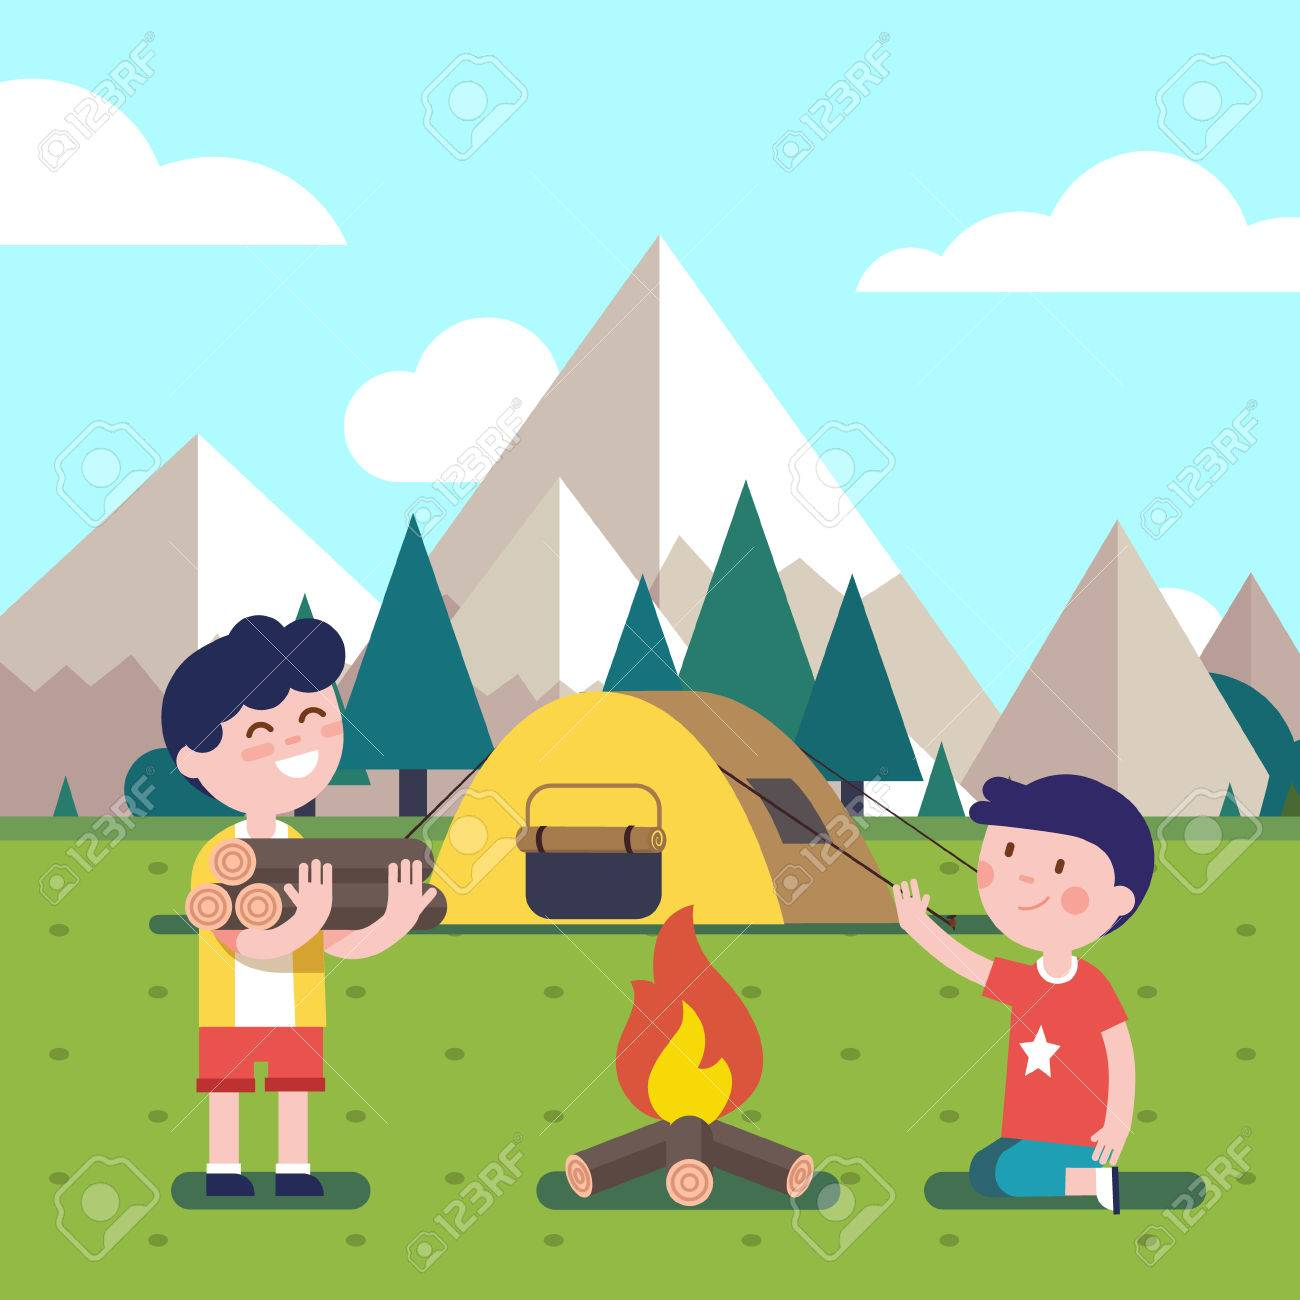 167 Camping Tent free clipart.